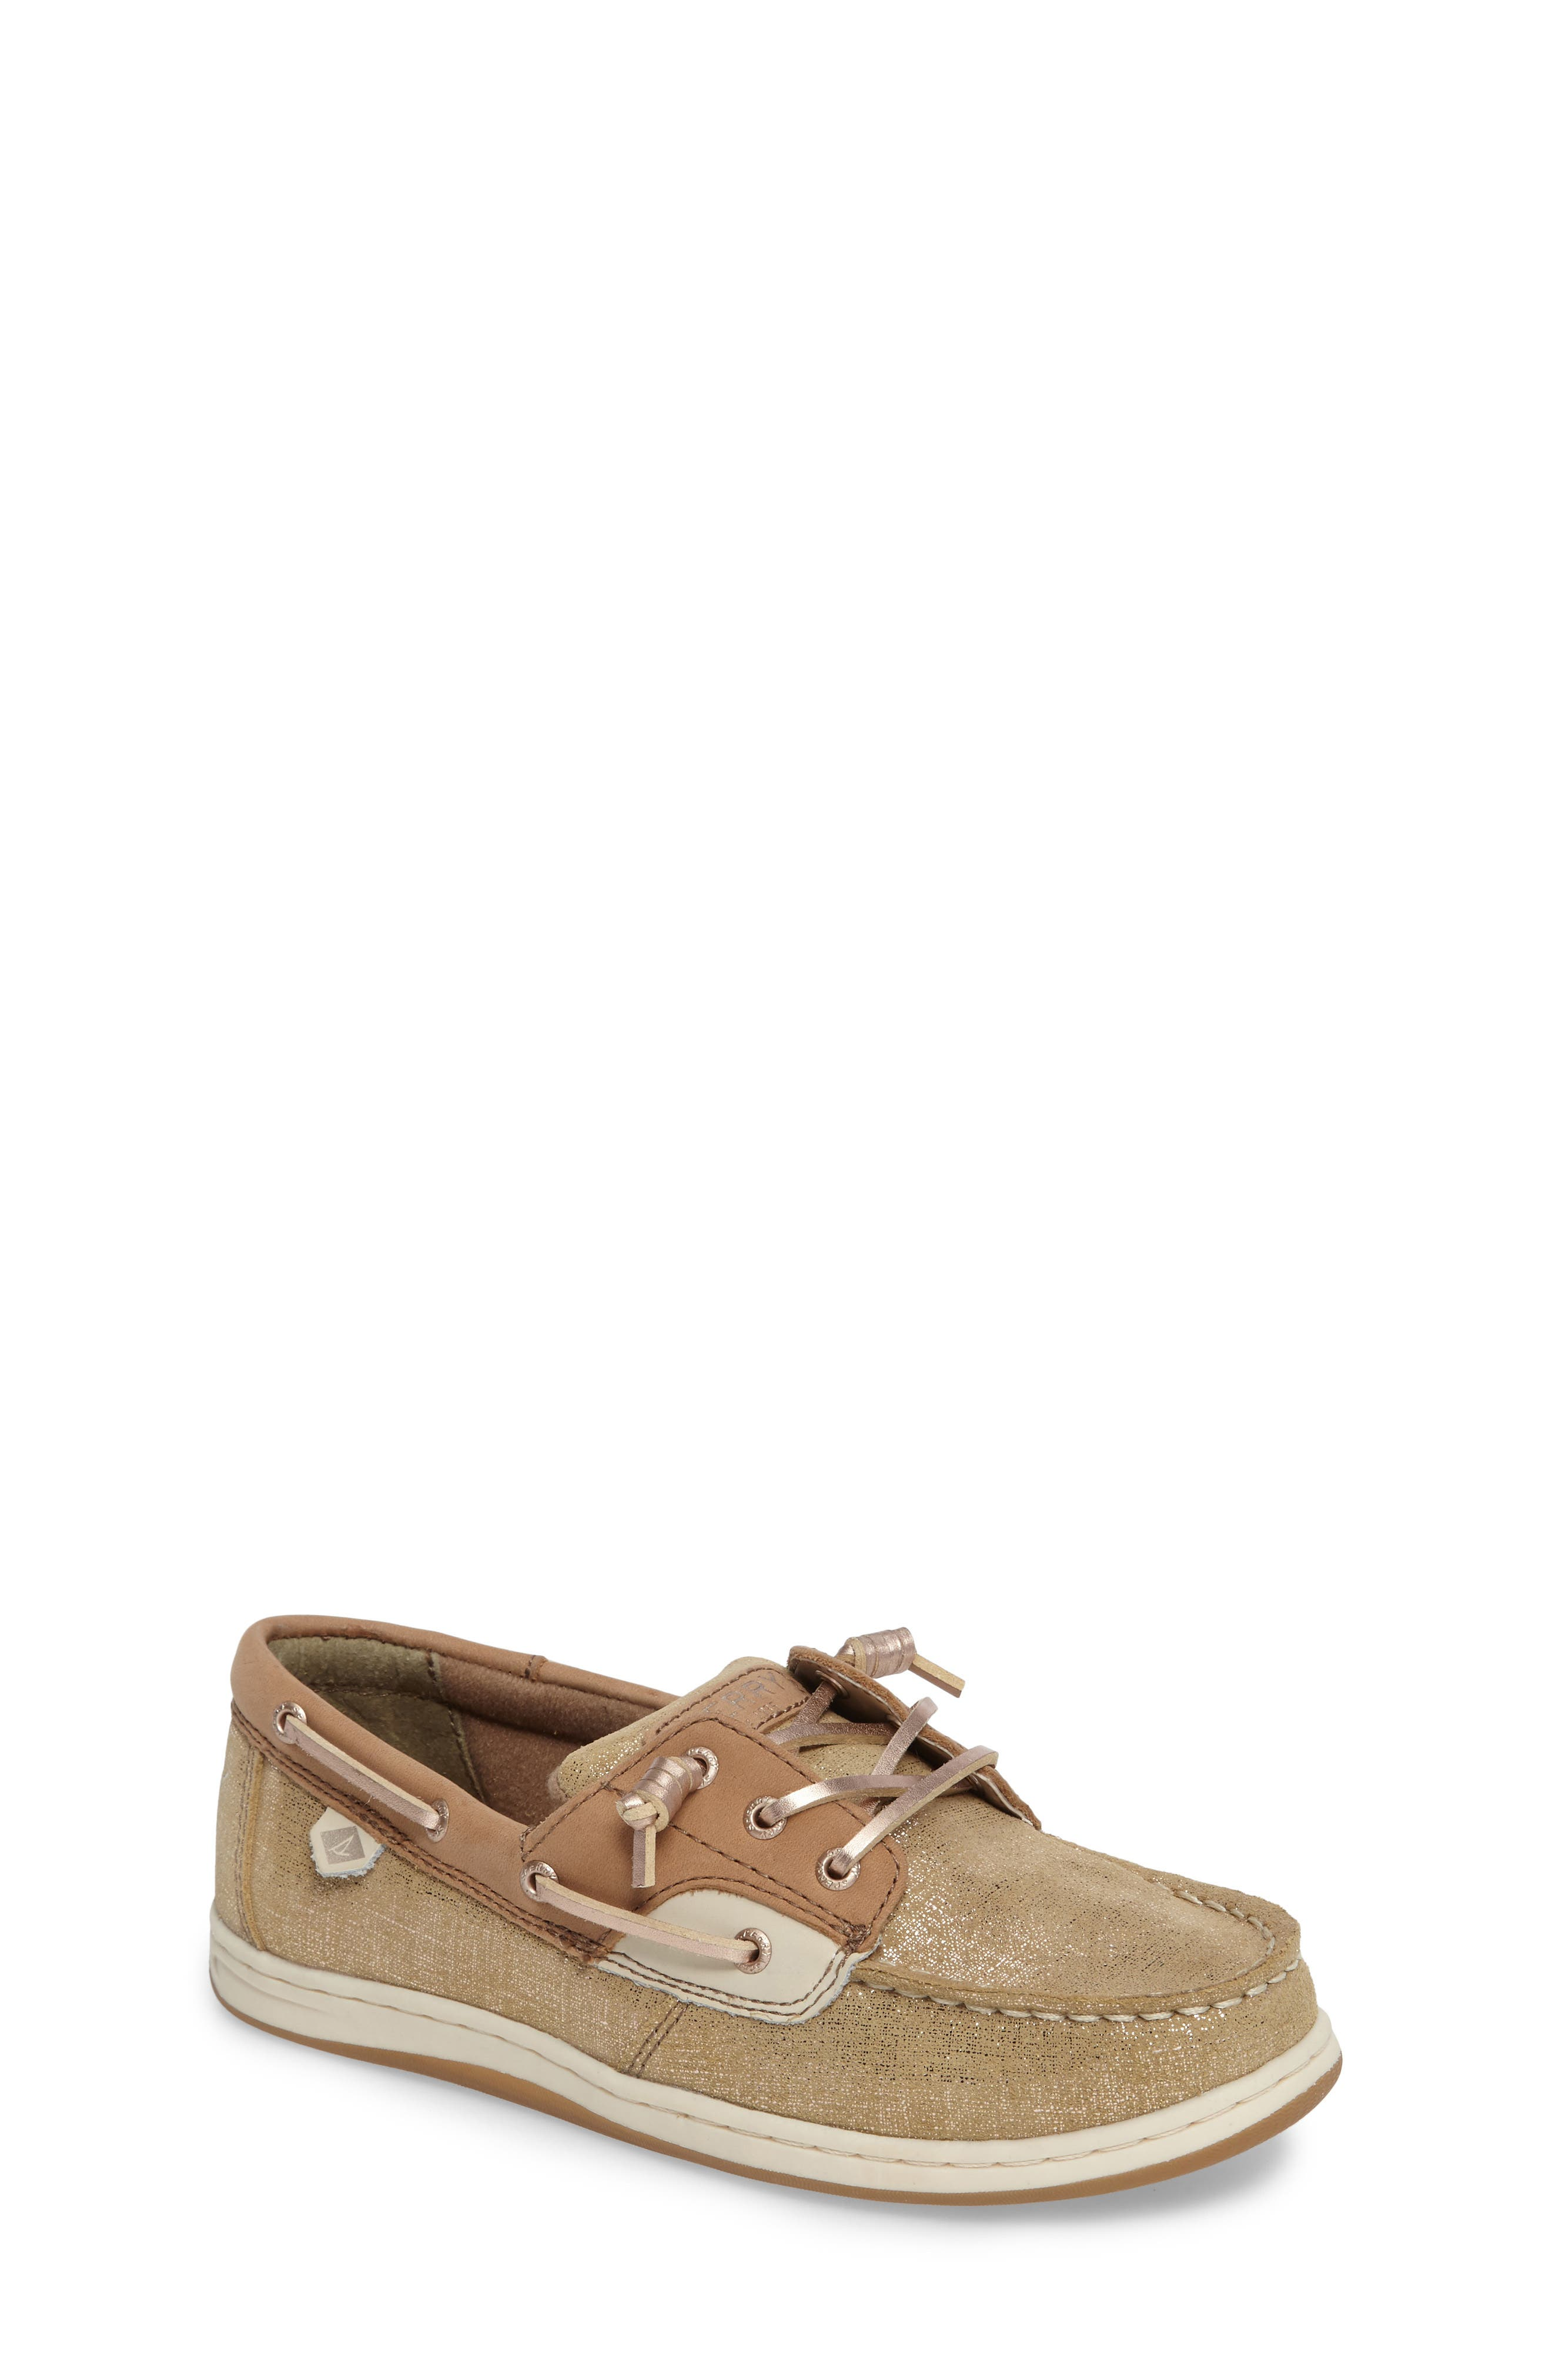 'Songfish' Boat Shoe,                         Main,                         color, Linen/ Gold